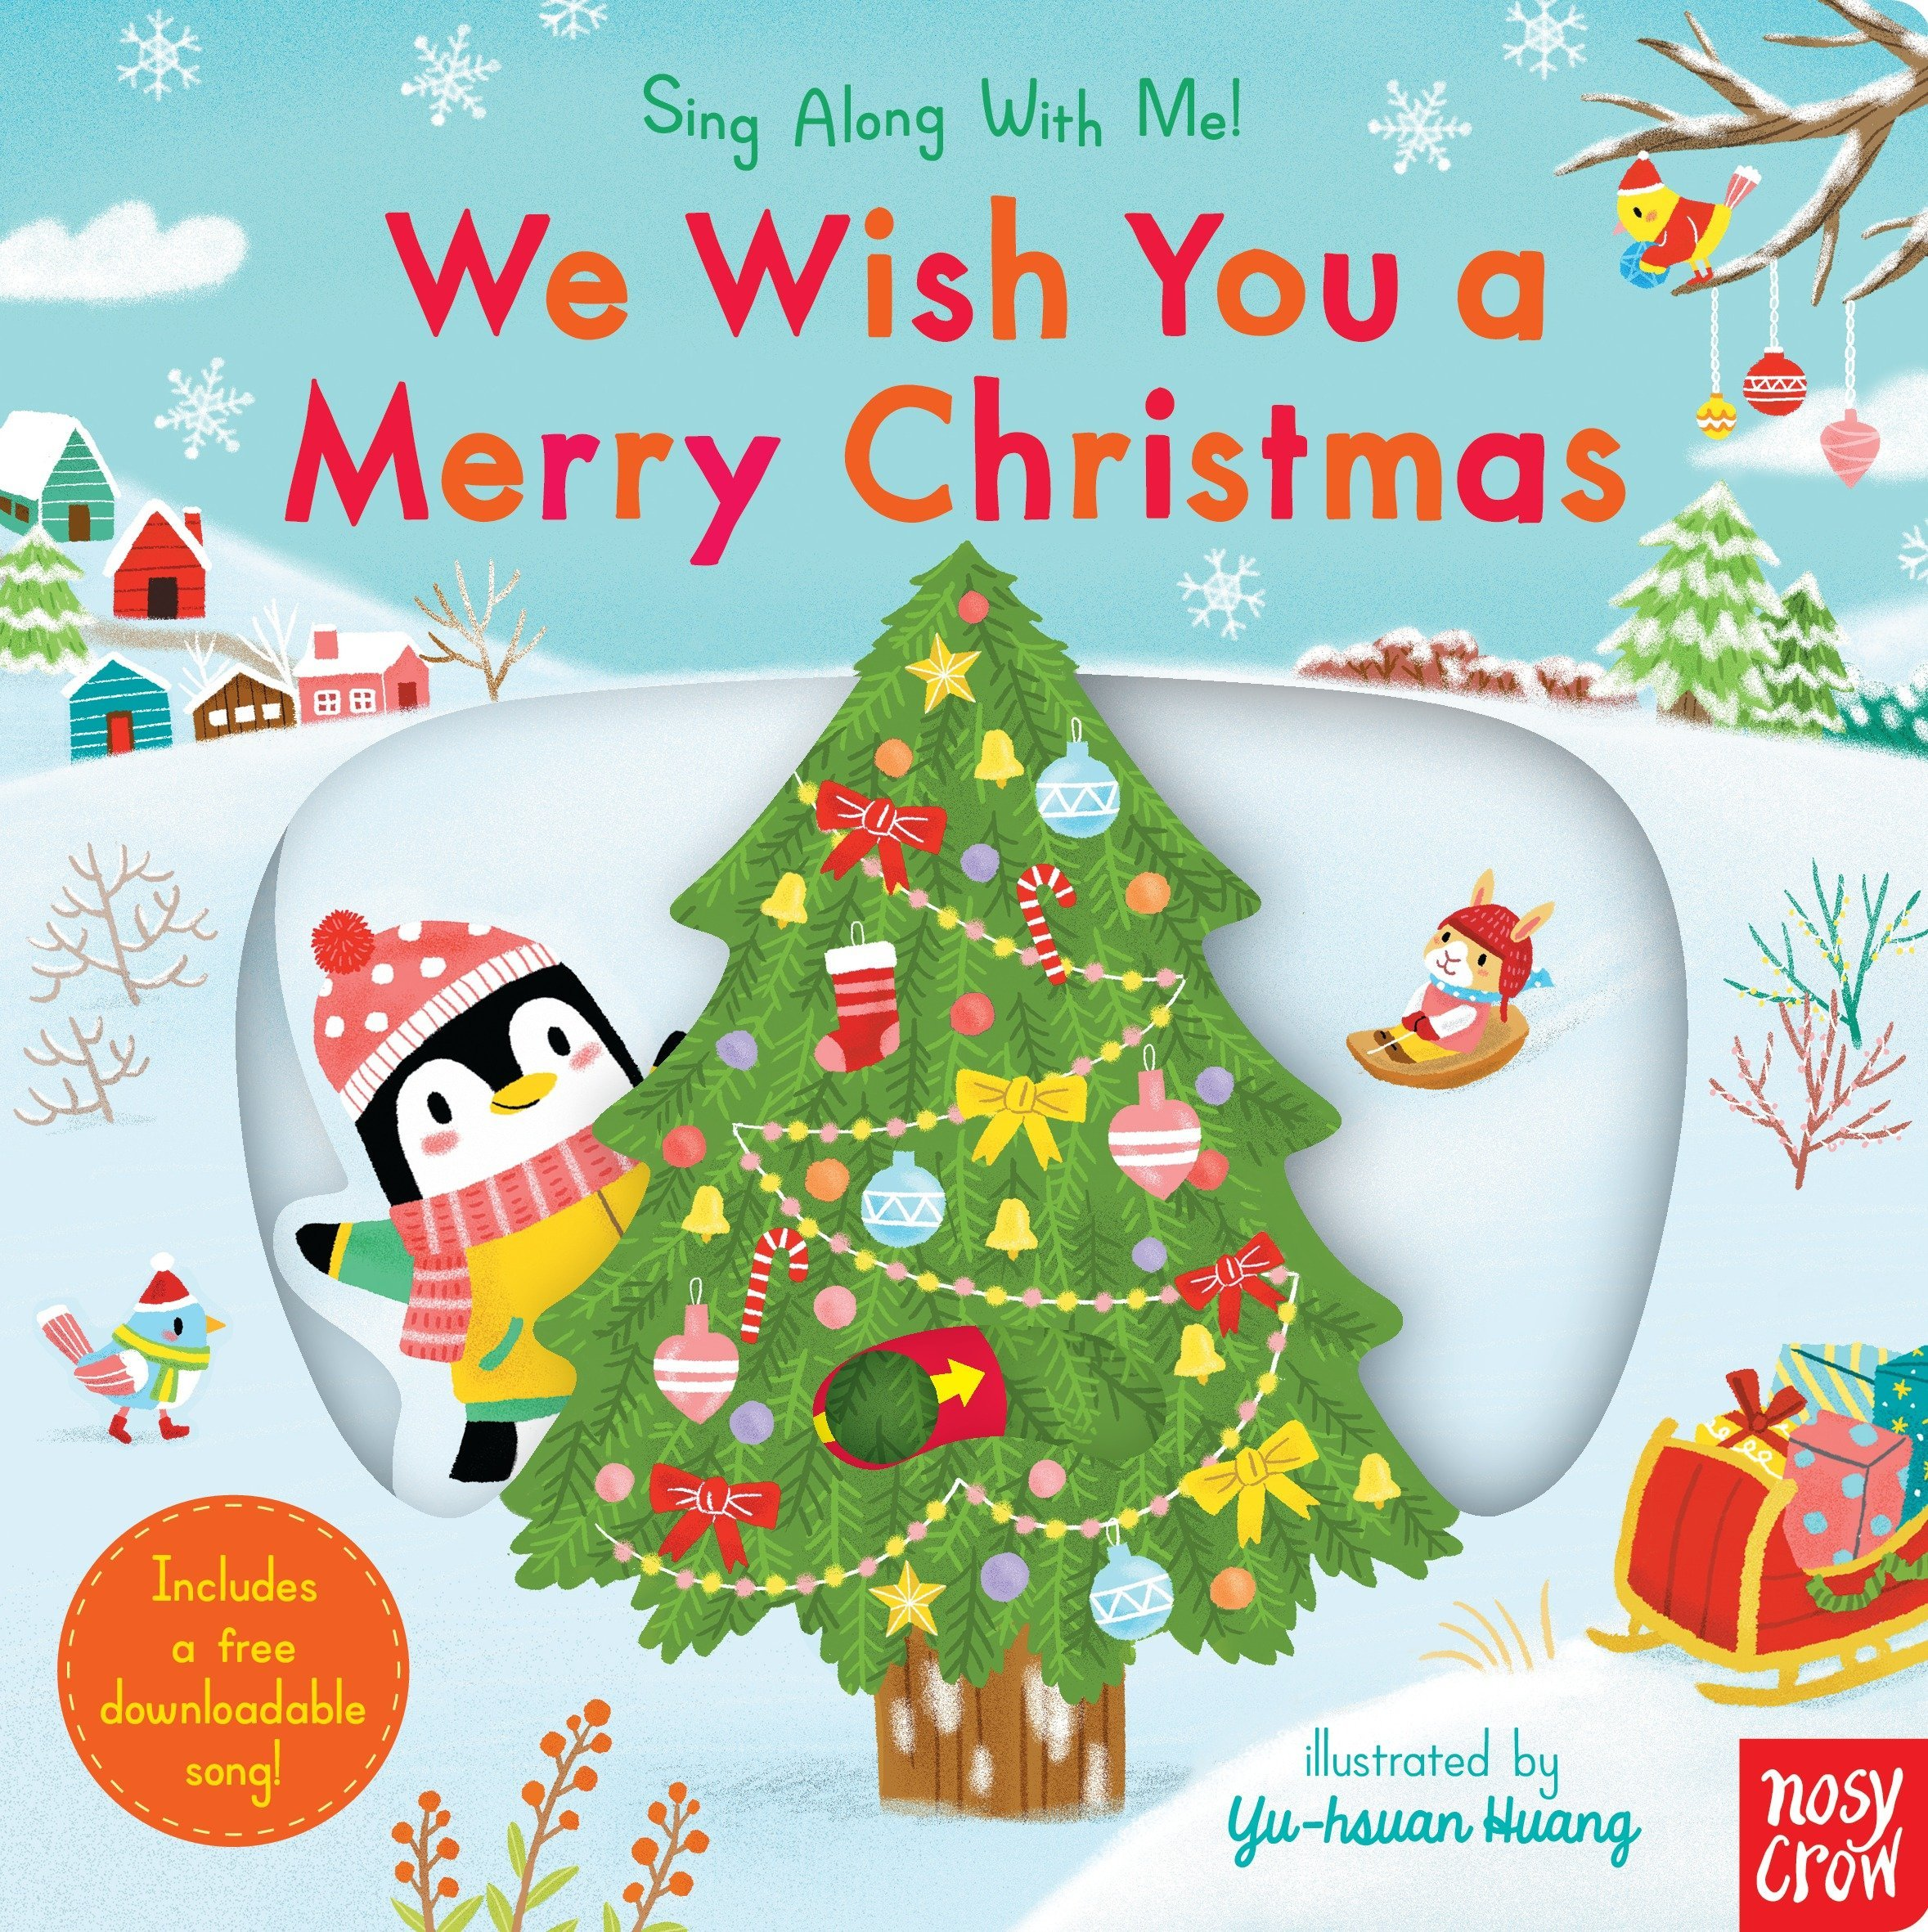 We Wish You A Merry Christmas Song.Amazon Com We Wish You A Merry Christmas Sing Along With